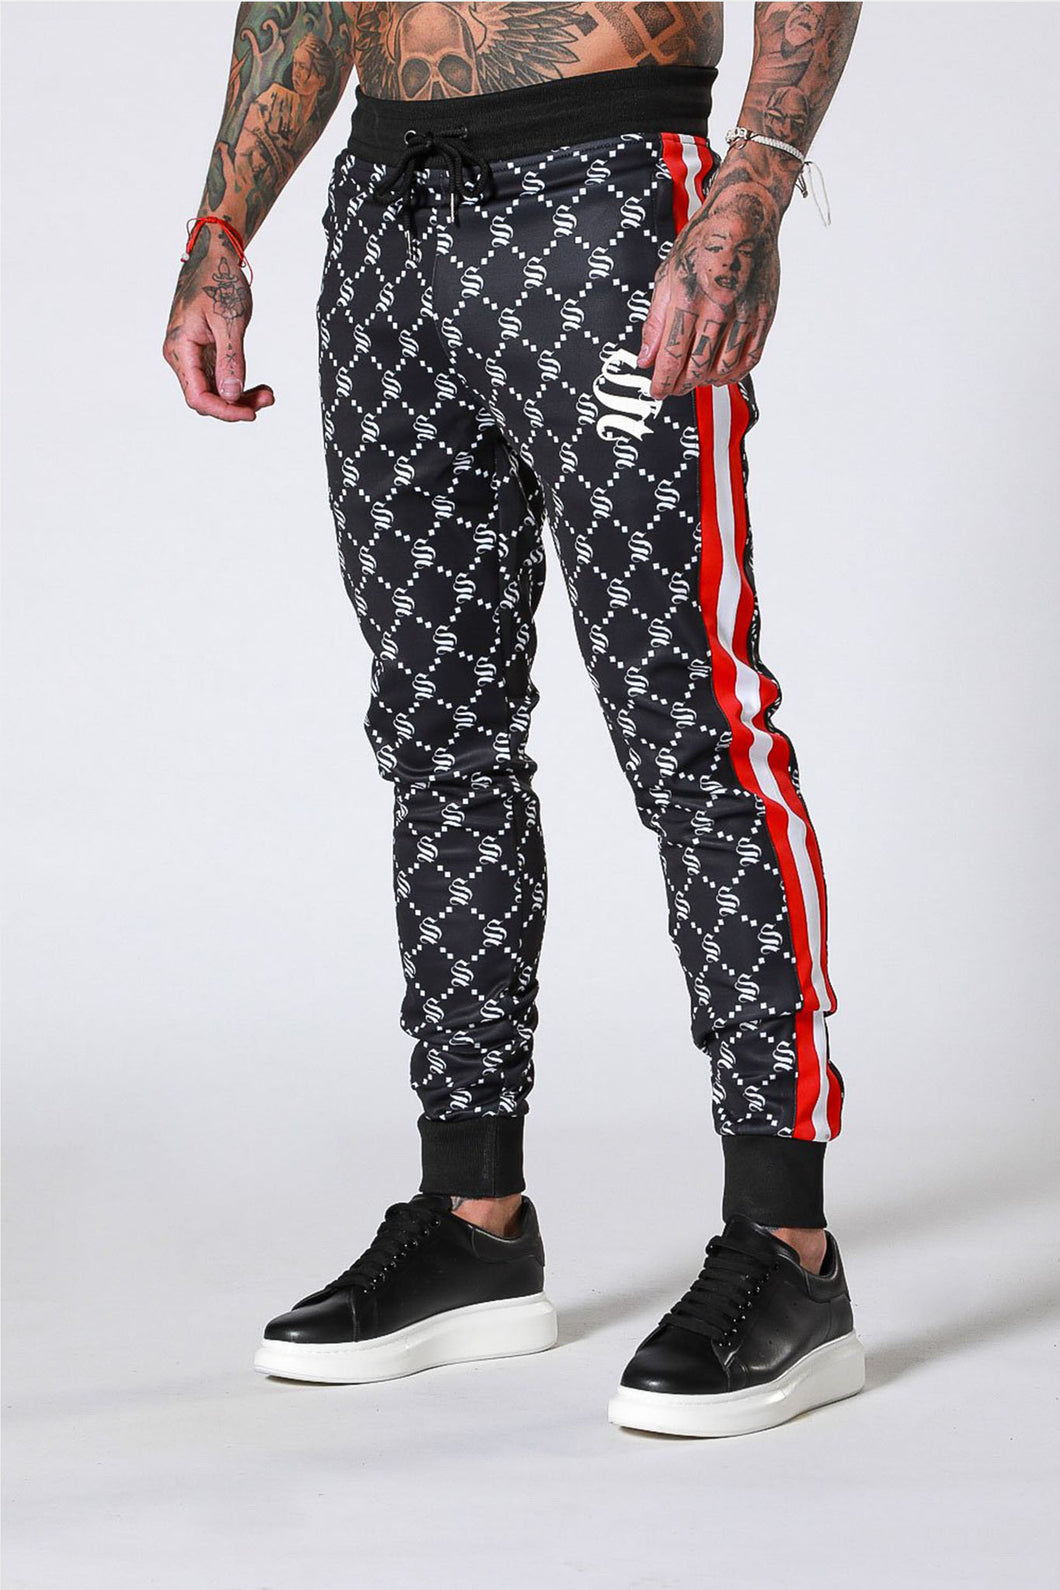 Sinners Attire Monogram Joggers - Black